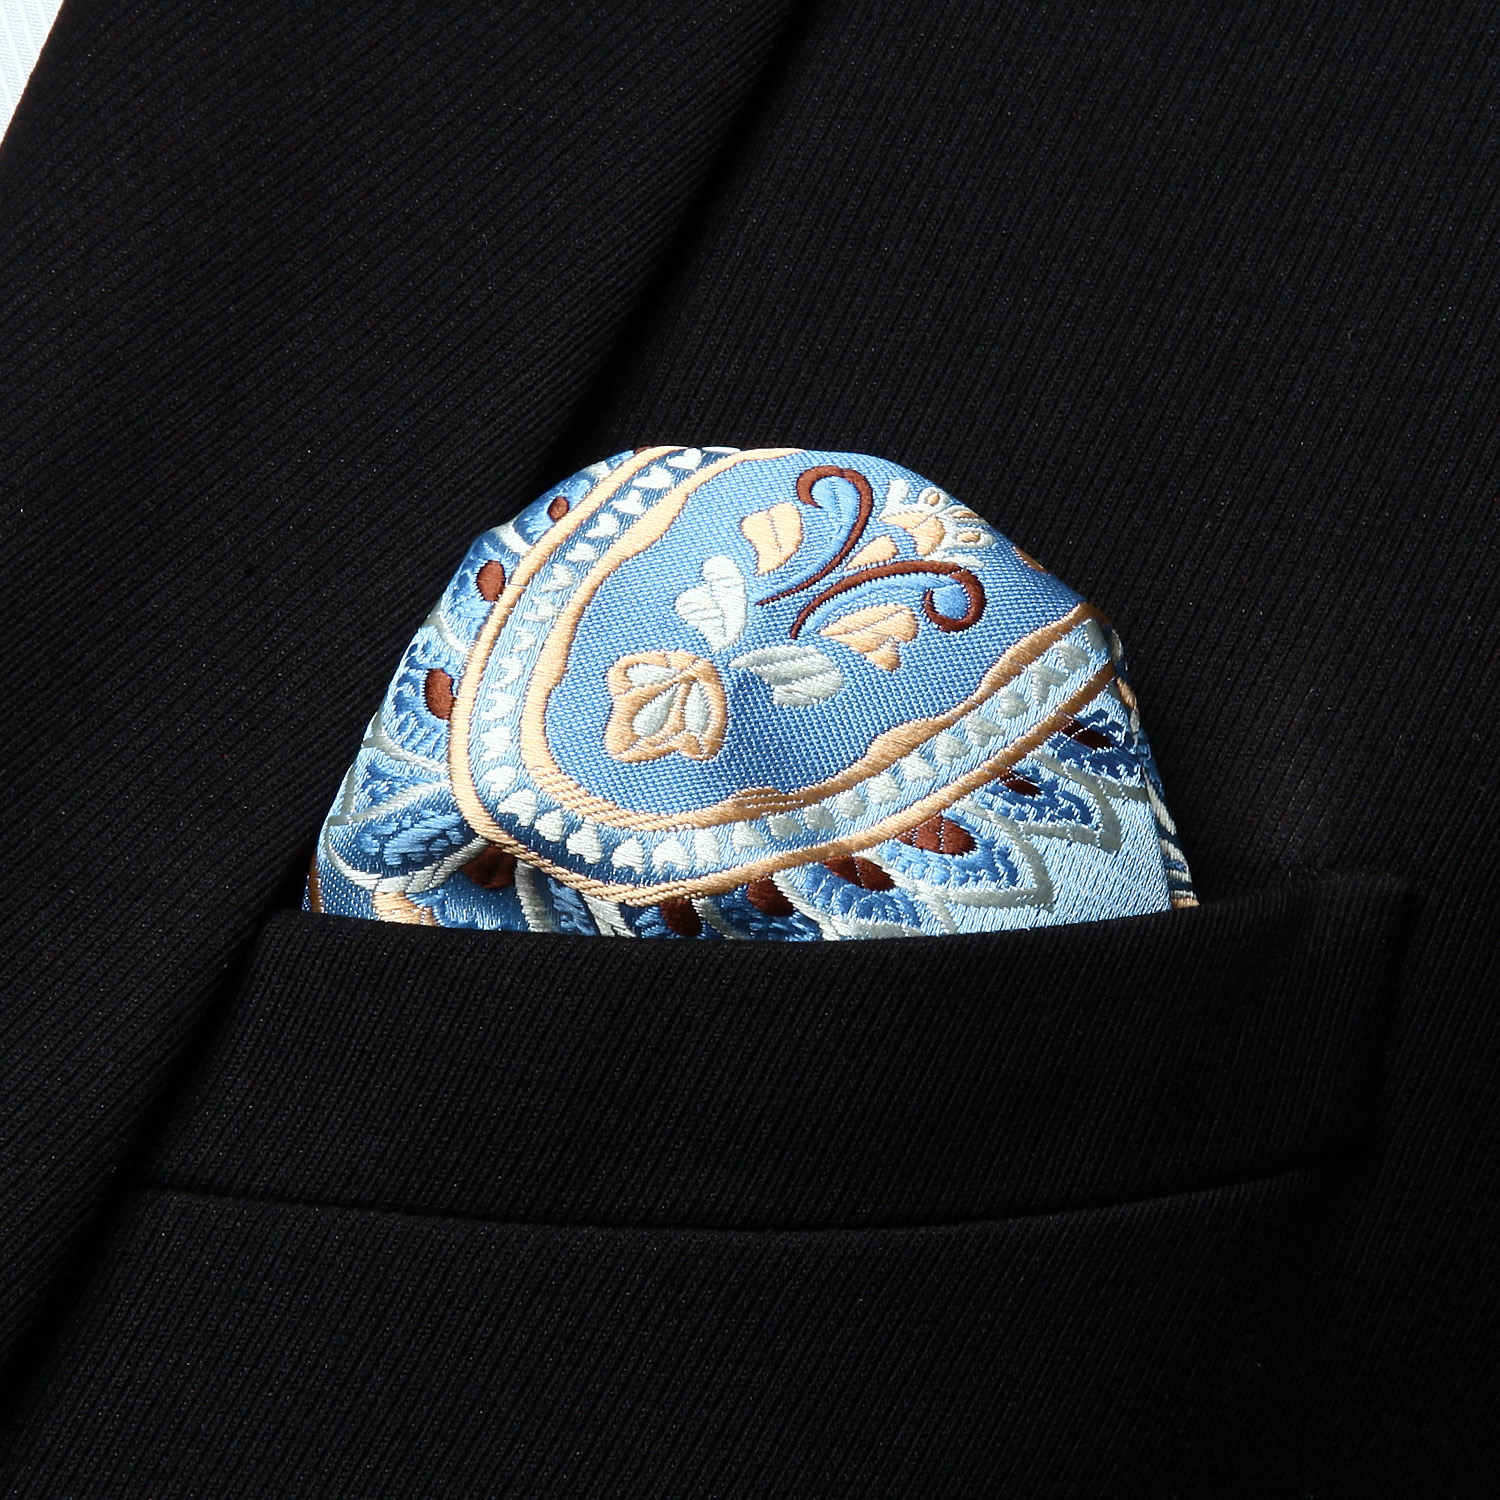 RP928BS Blue Gold Paisley Men Silk Cravat Scarves Ascot Tie Handkerchief Set